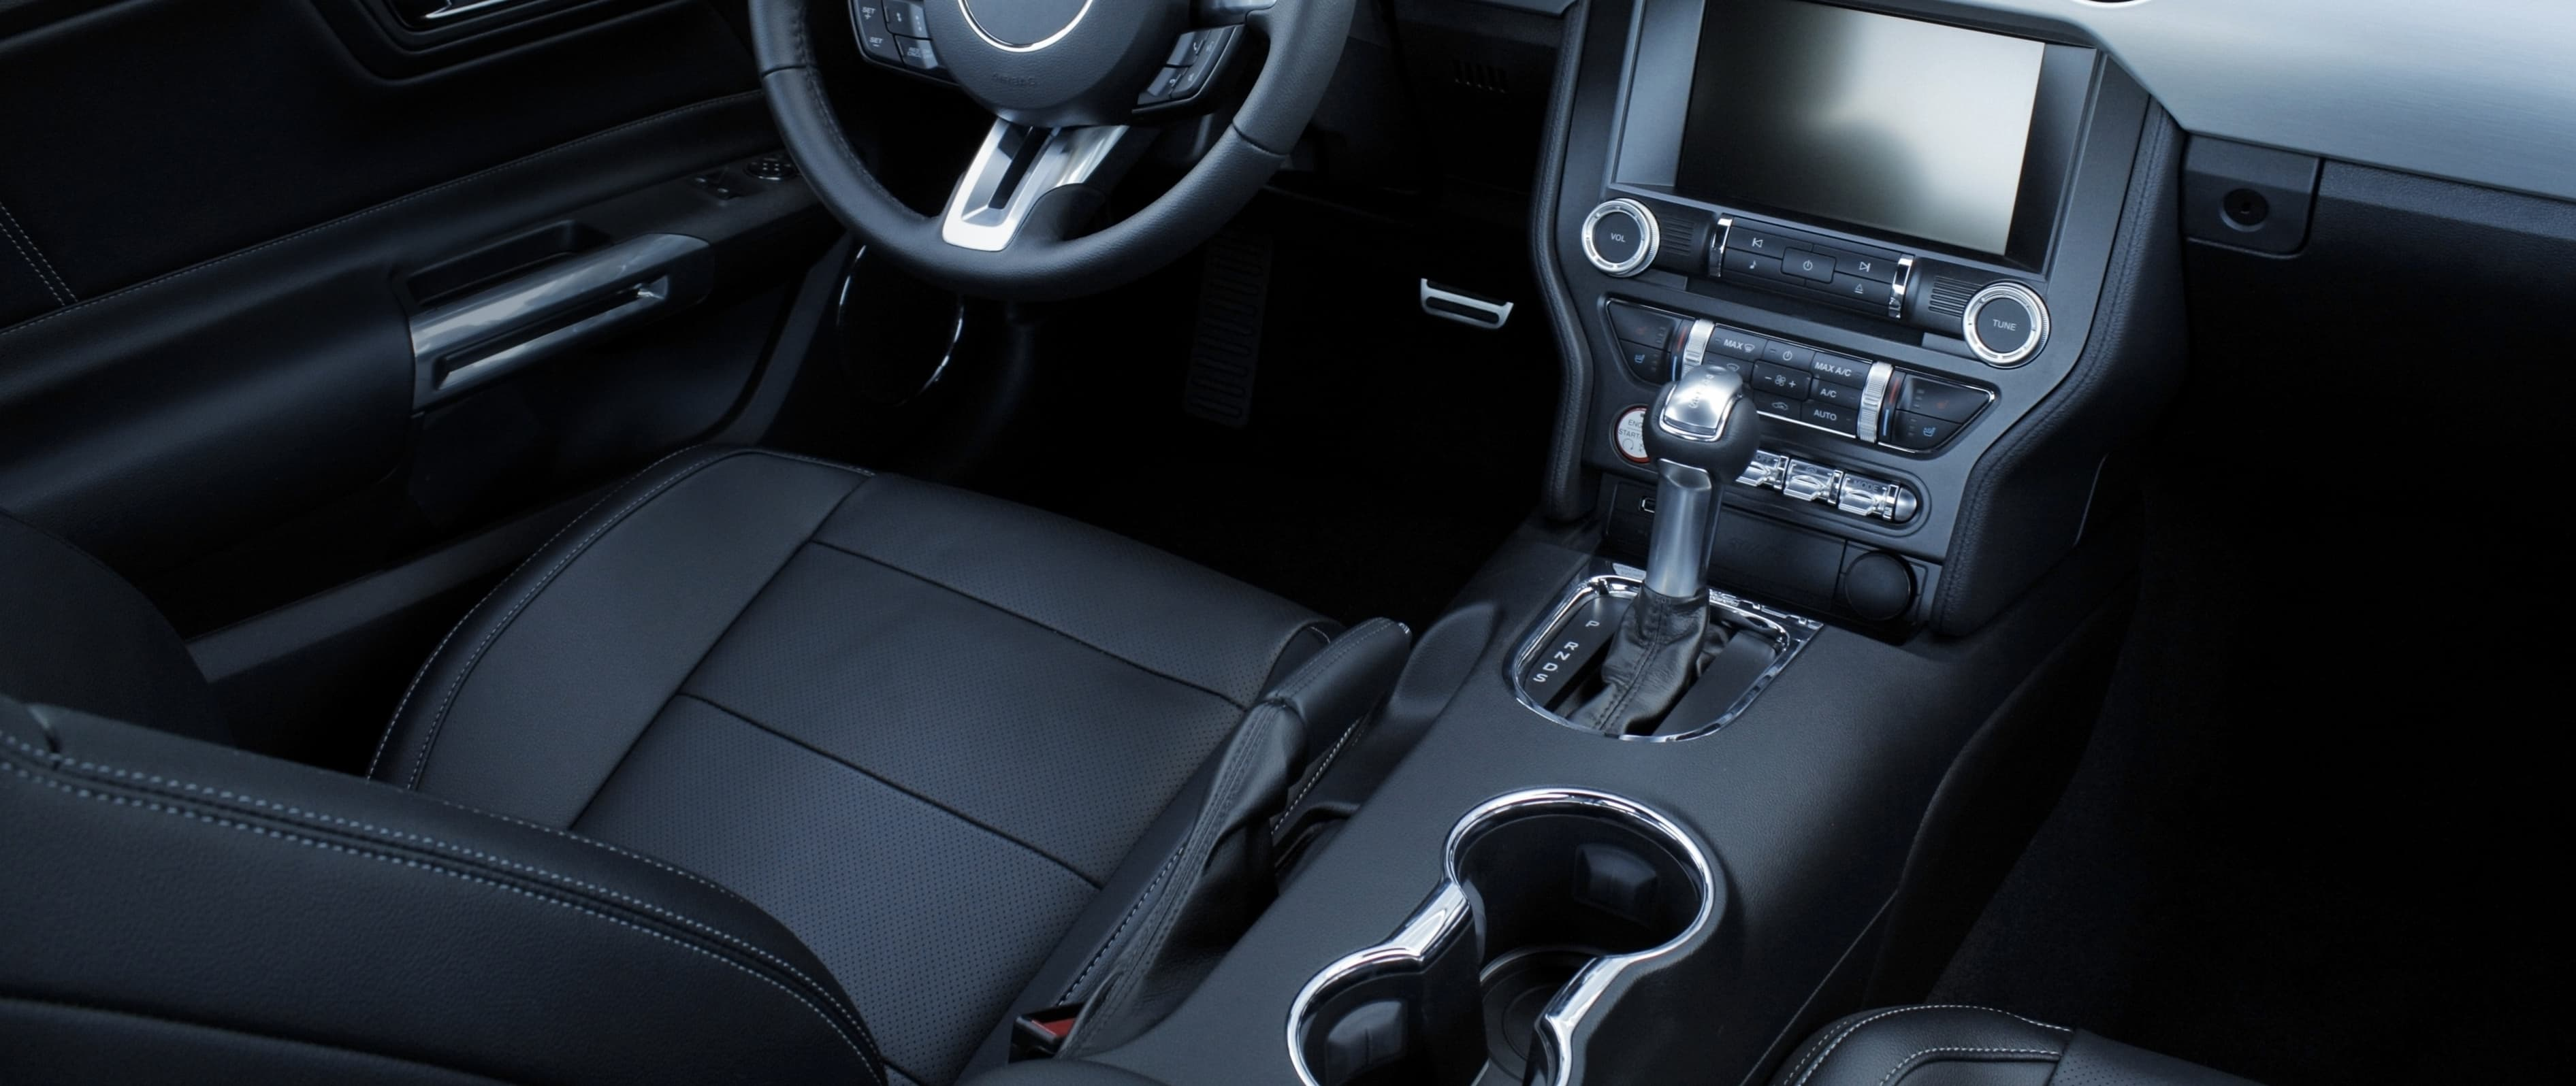 Automotive interiors for tomorrow's mobility needs